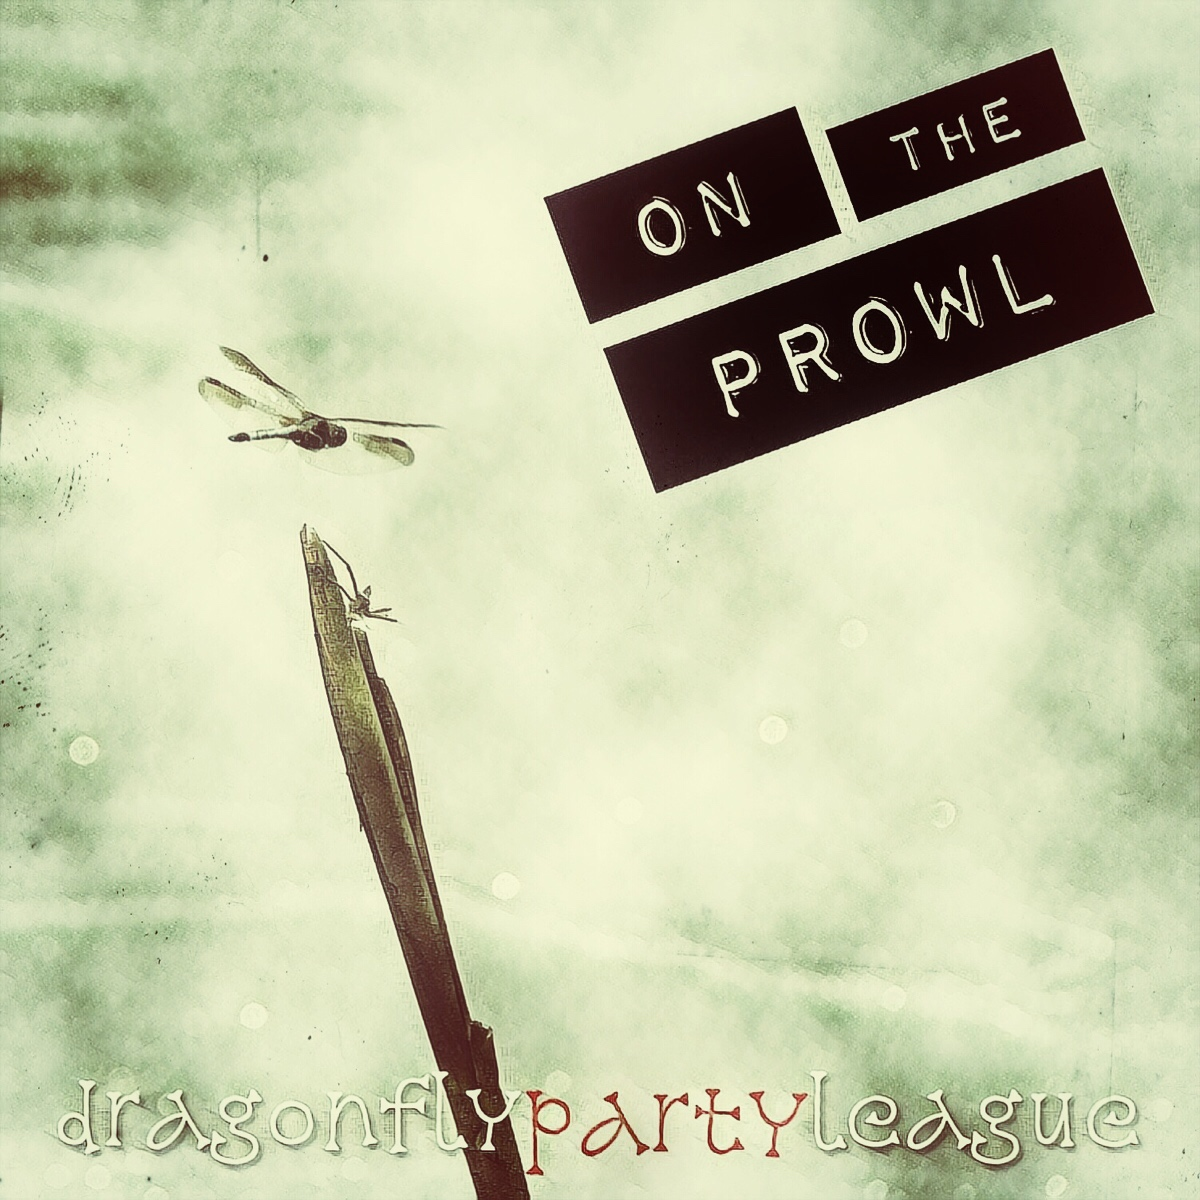 dragonfly party league